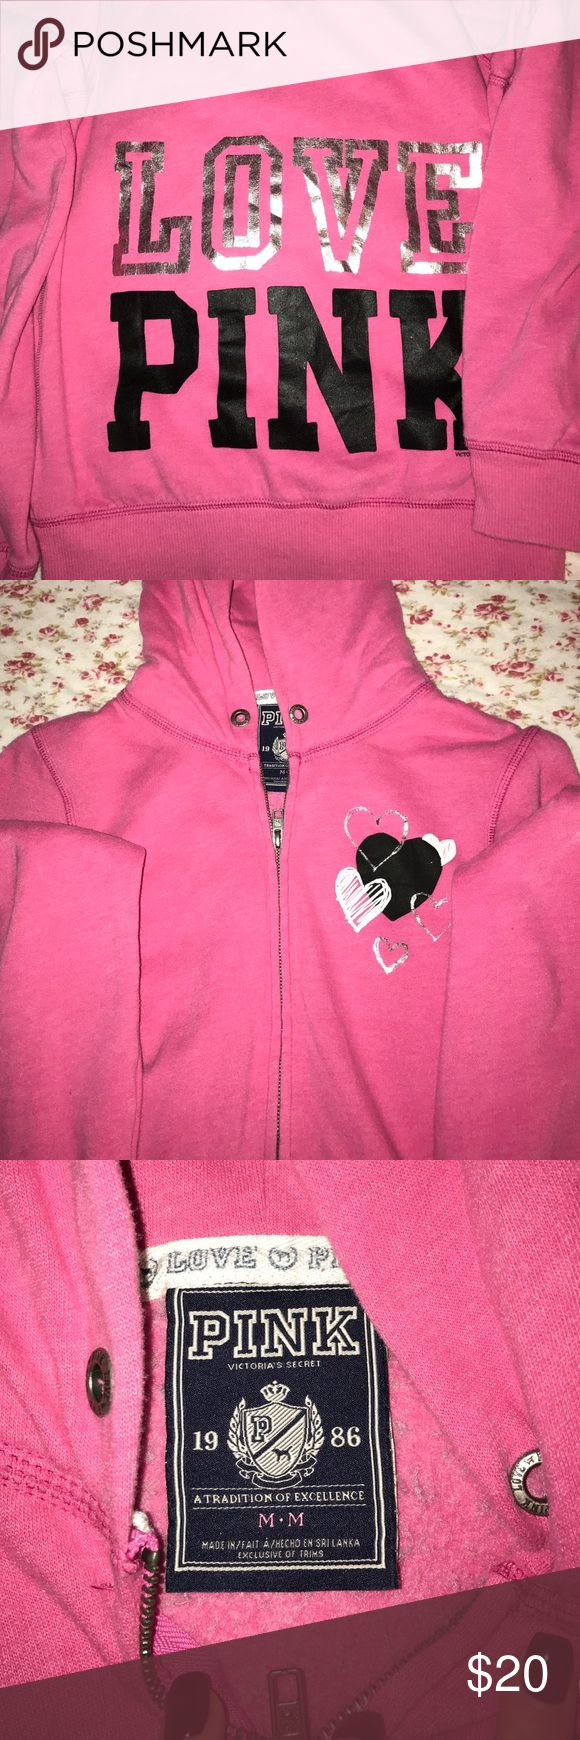 Victoria's secret pink zip up hoodie size medium great condition. Love pink on the back and hearts on the front PINK Victoria's Secret Tops Sweatshirts & Hoodies